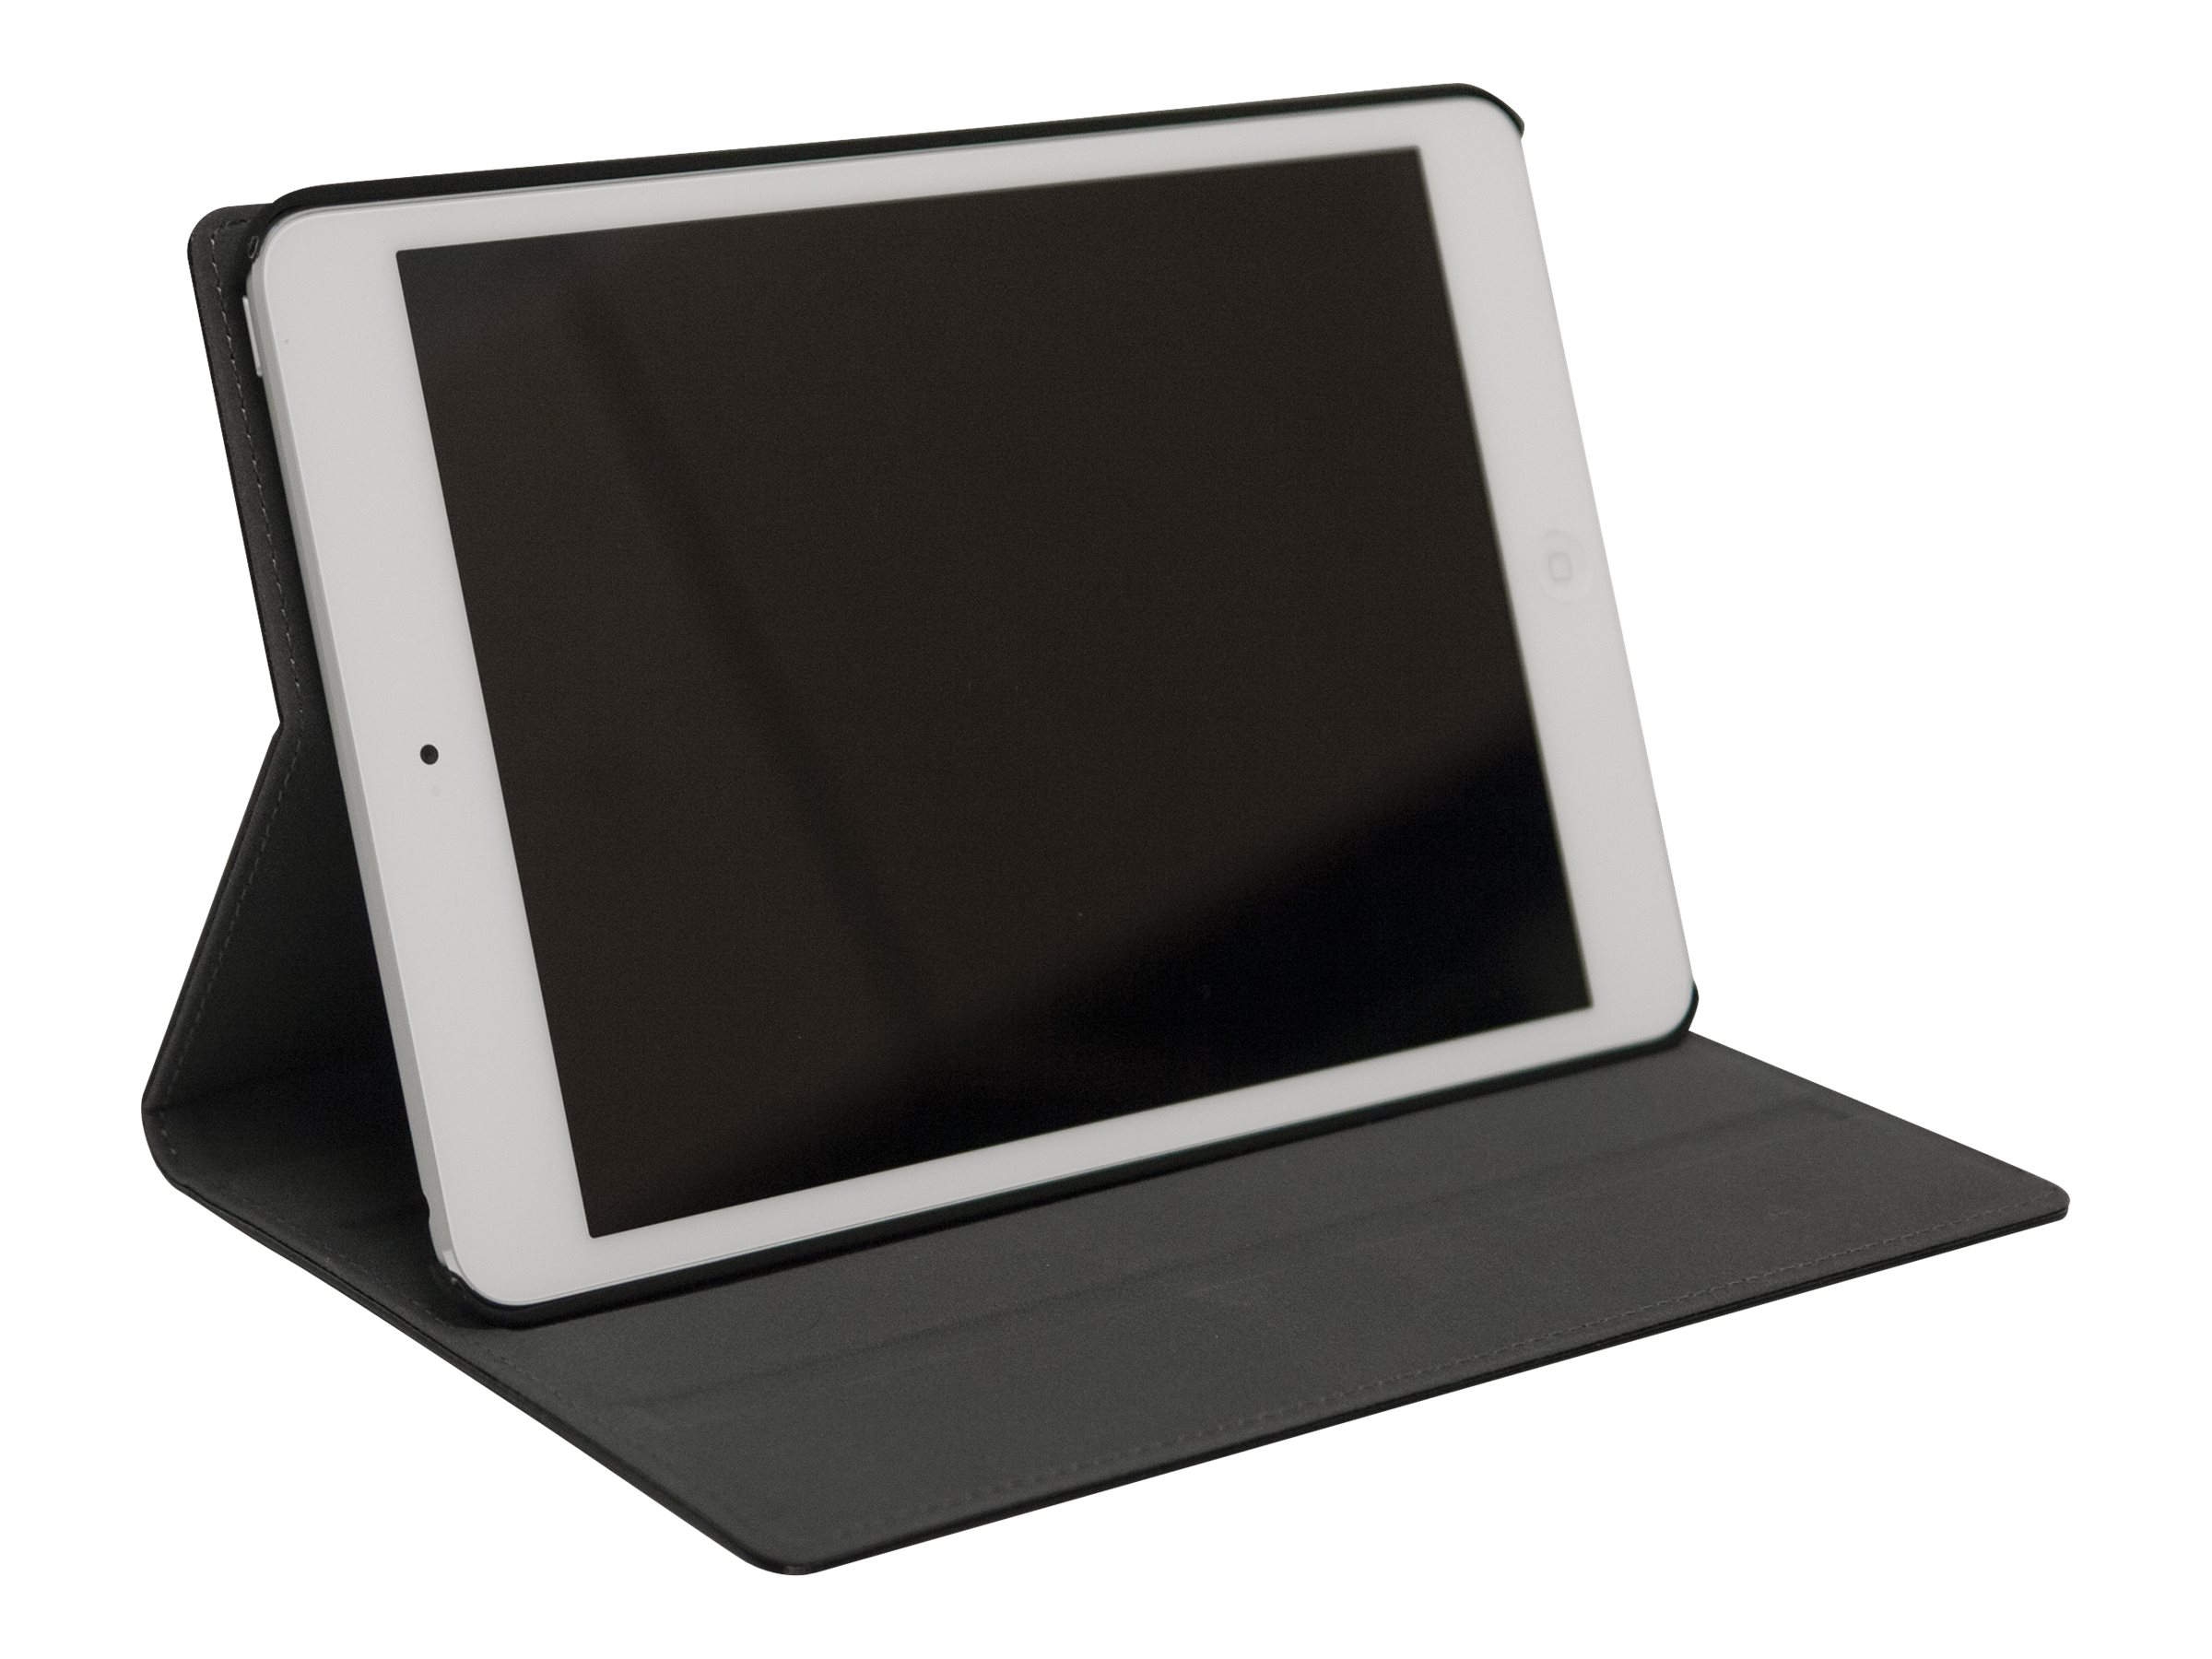 Mobile Edge Deluxe Slimfit for iPad Air, MEIAC2